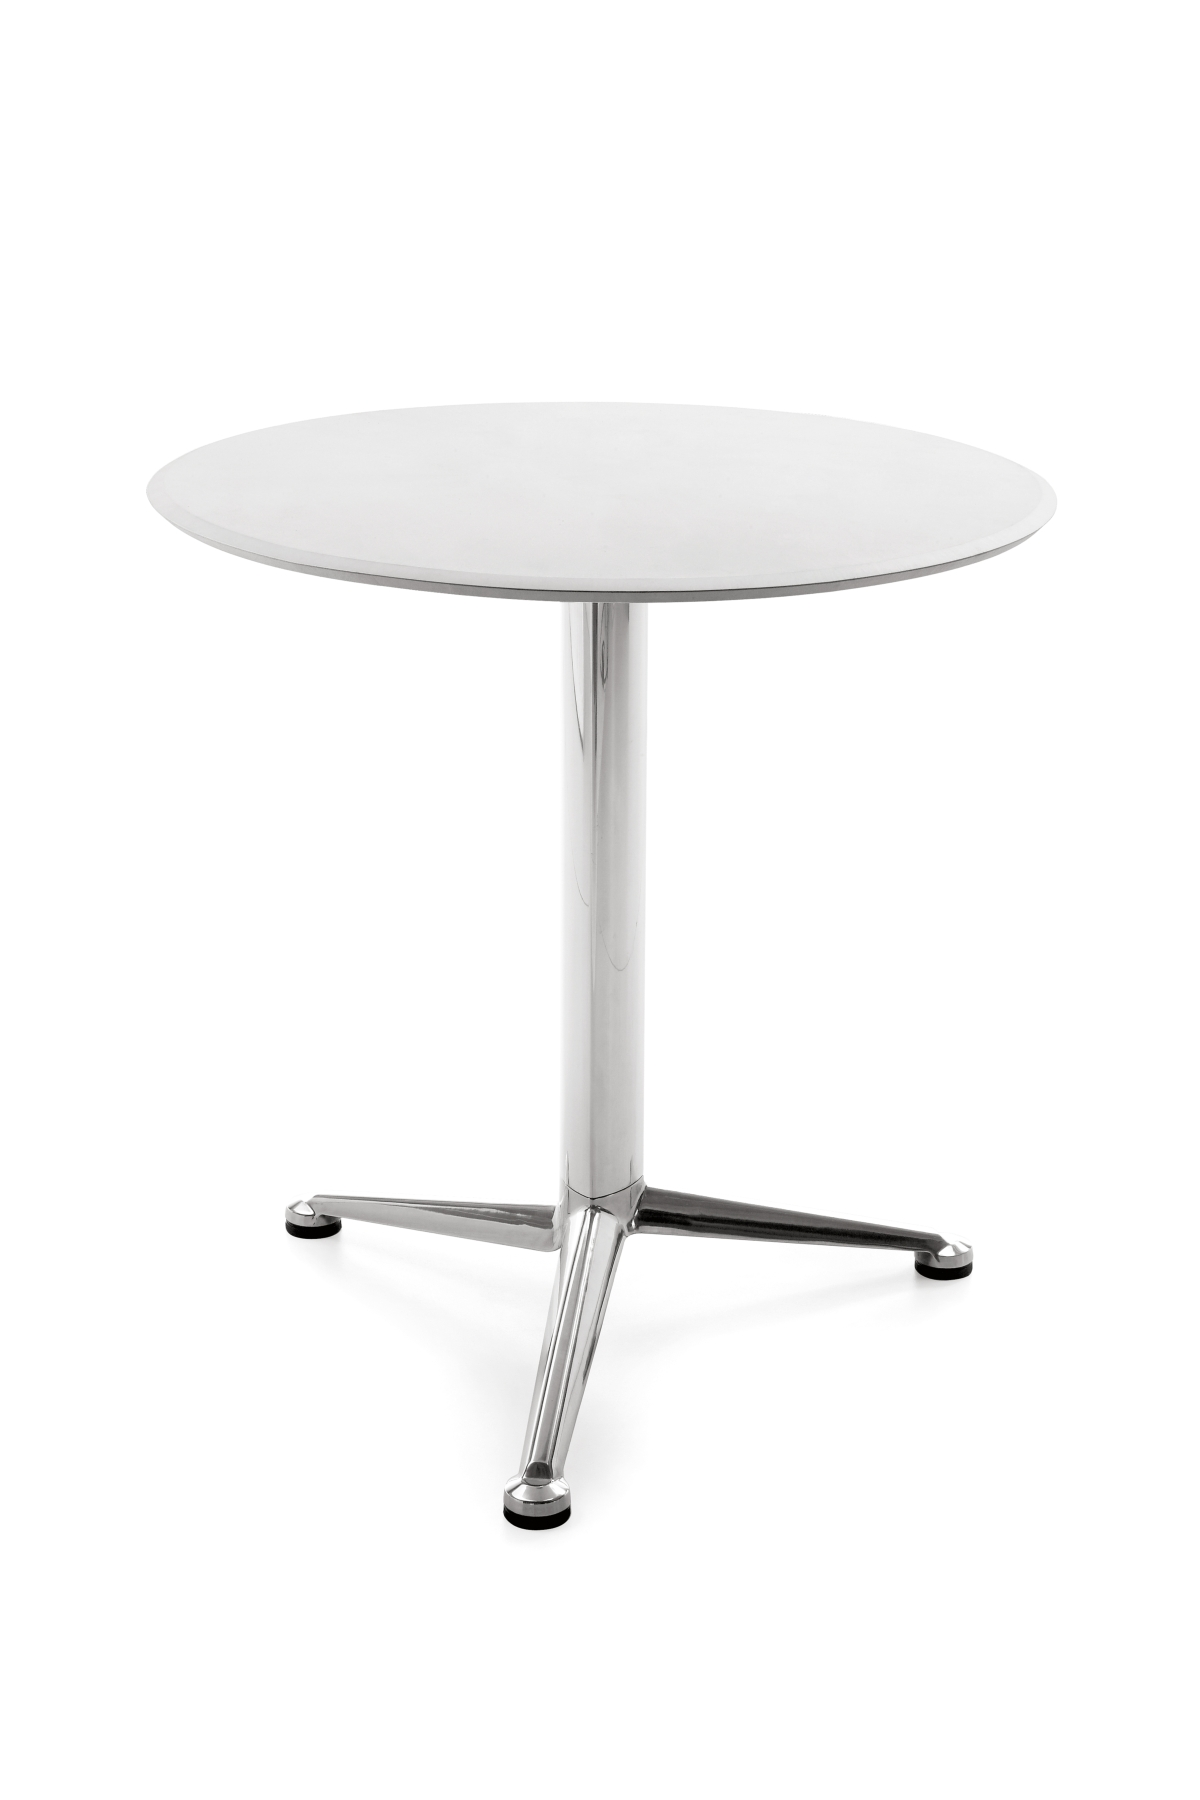 Infiniti Design, 3-Pod table